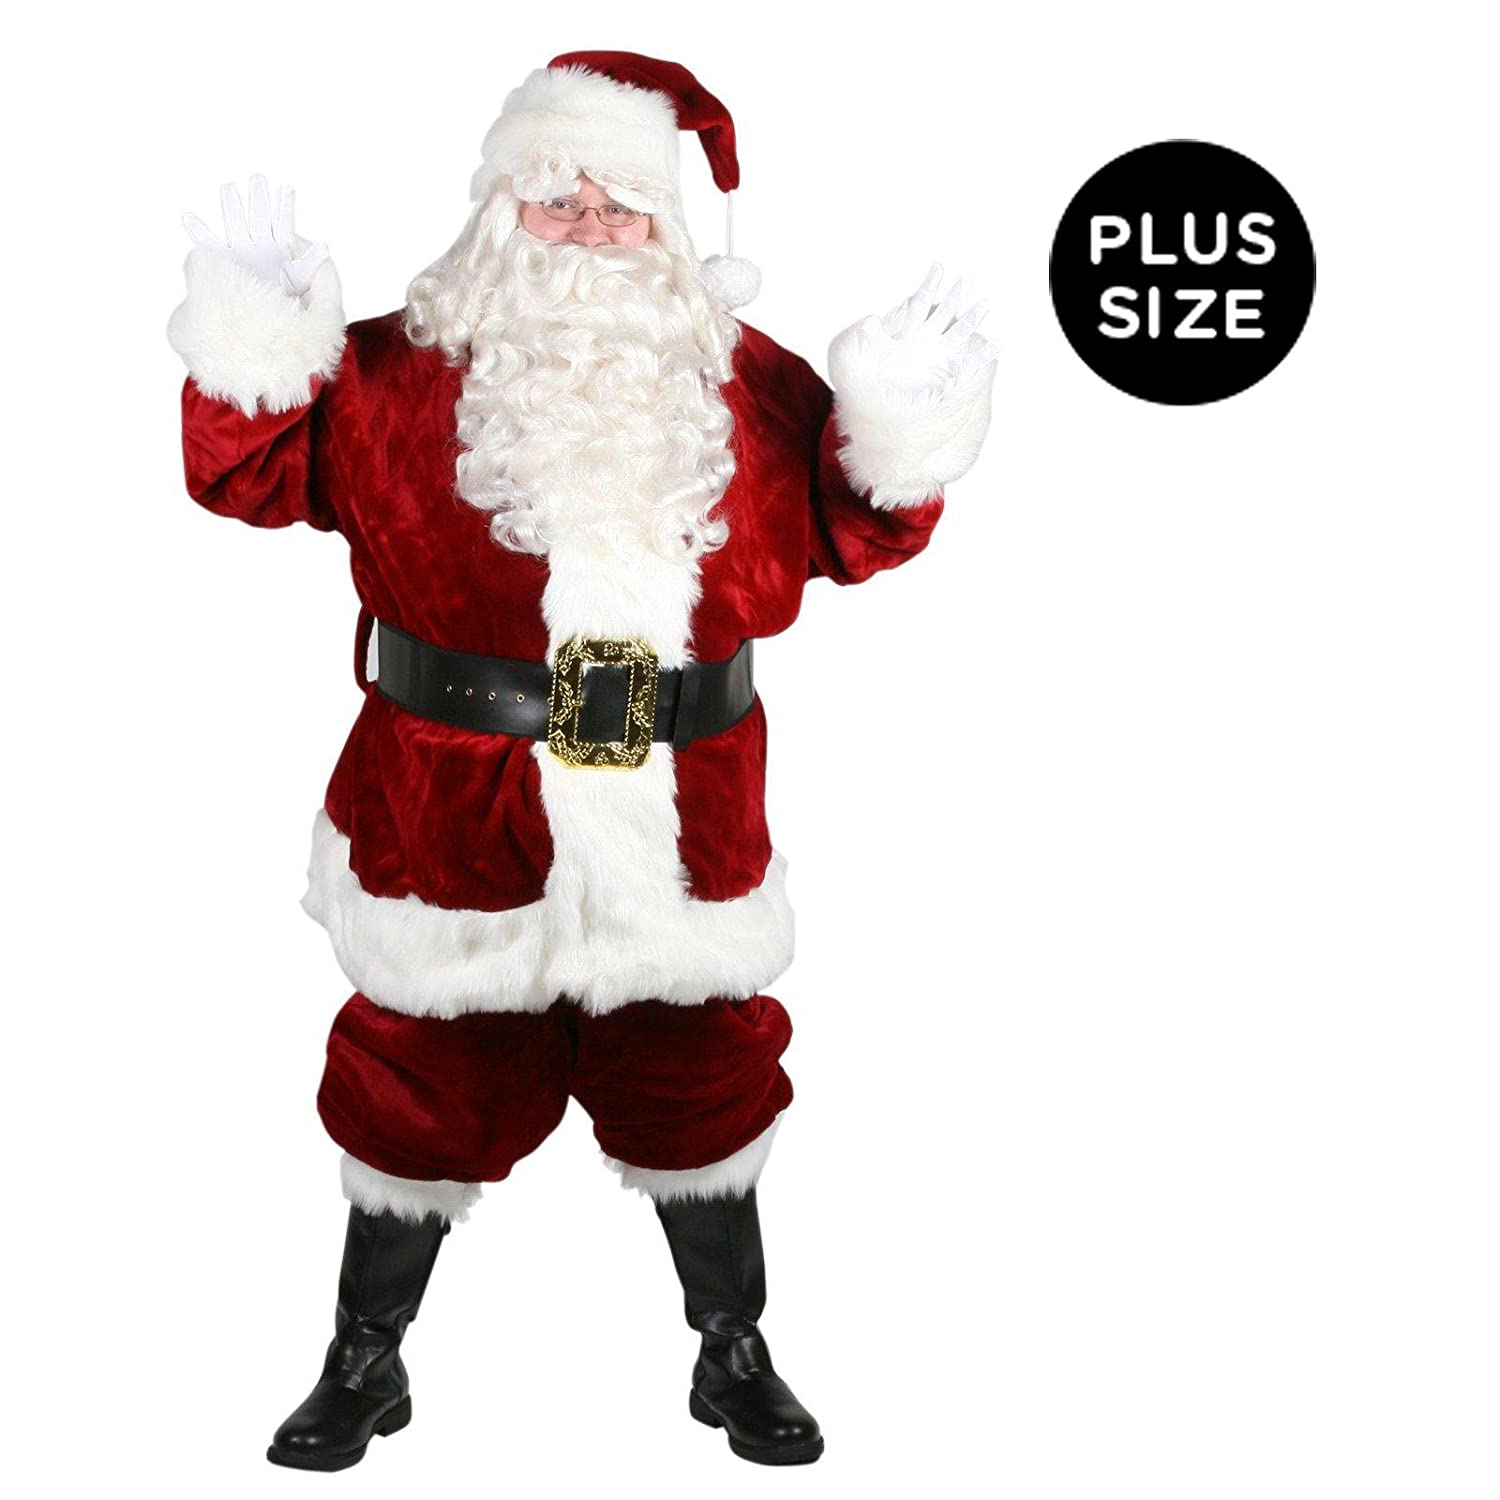 Adult santa claus suits and accessories deluxe